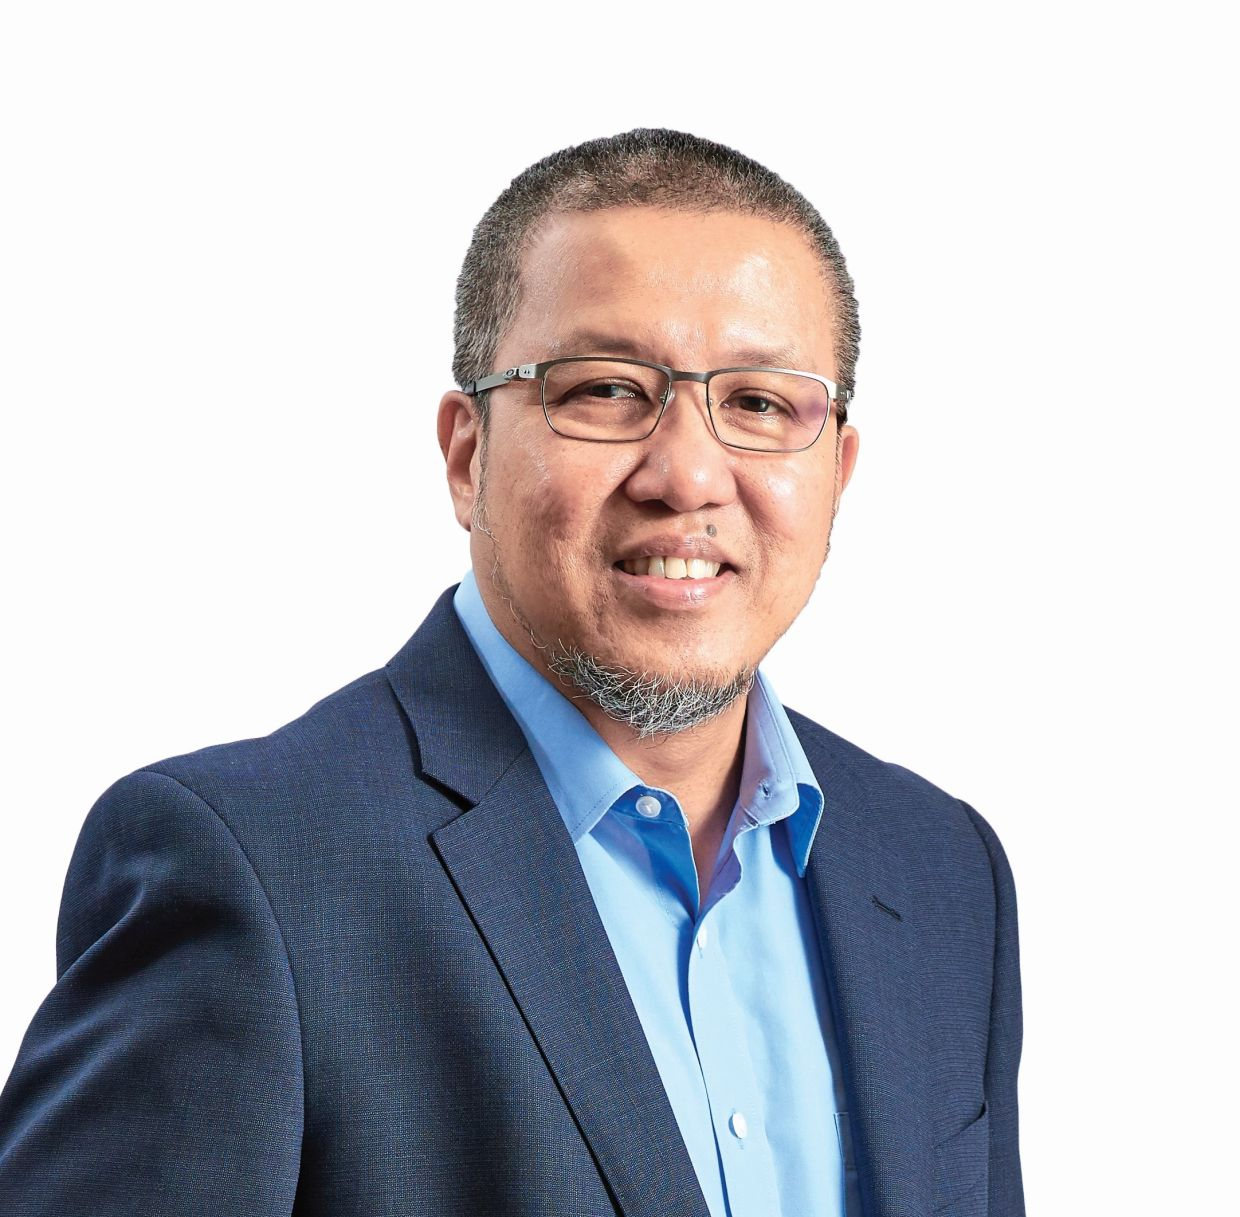 Axiata president and group chief executive officer Datuk Izzaddin Idris said the group is targeting low single digit revenue and earnings before interest, depreciation and amortisation (Ebitda) growth for 2021